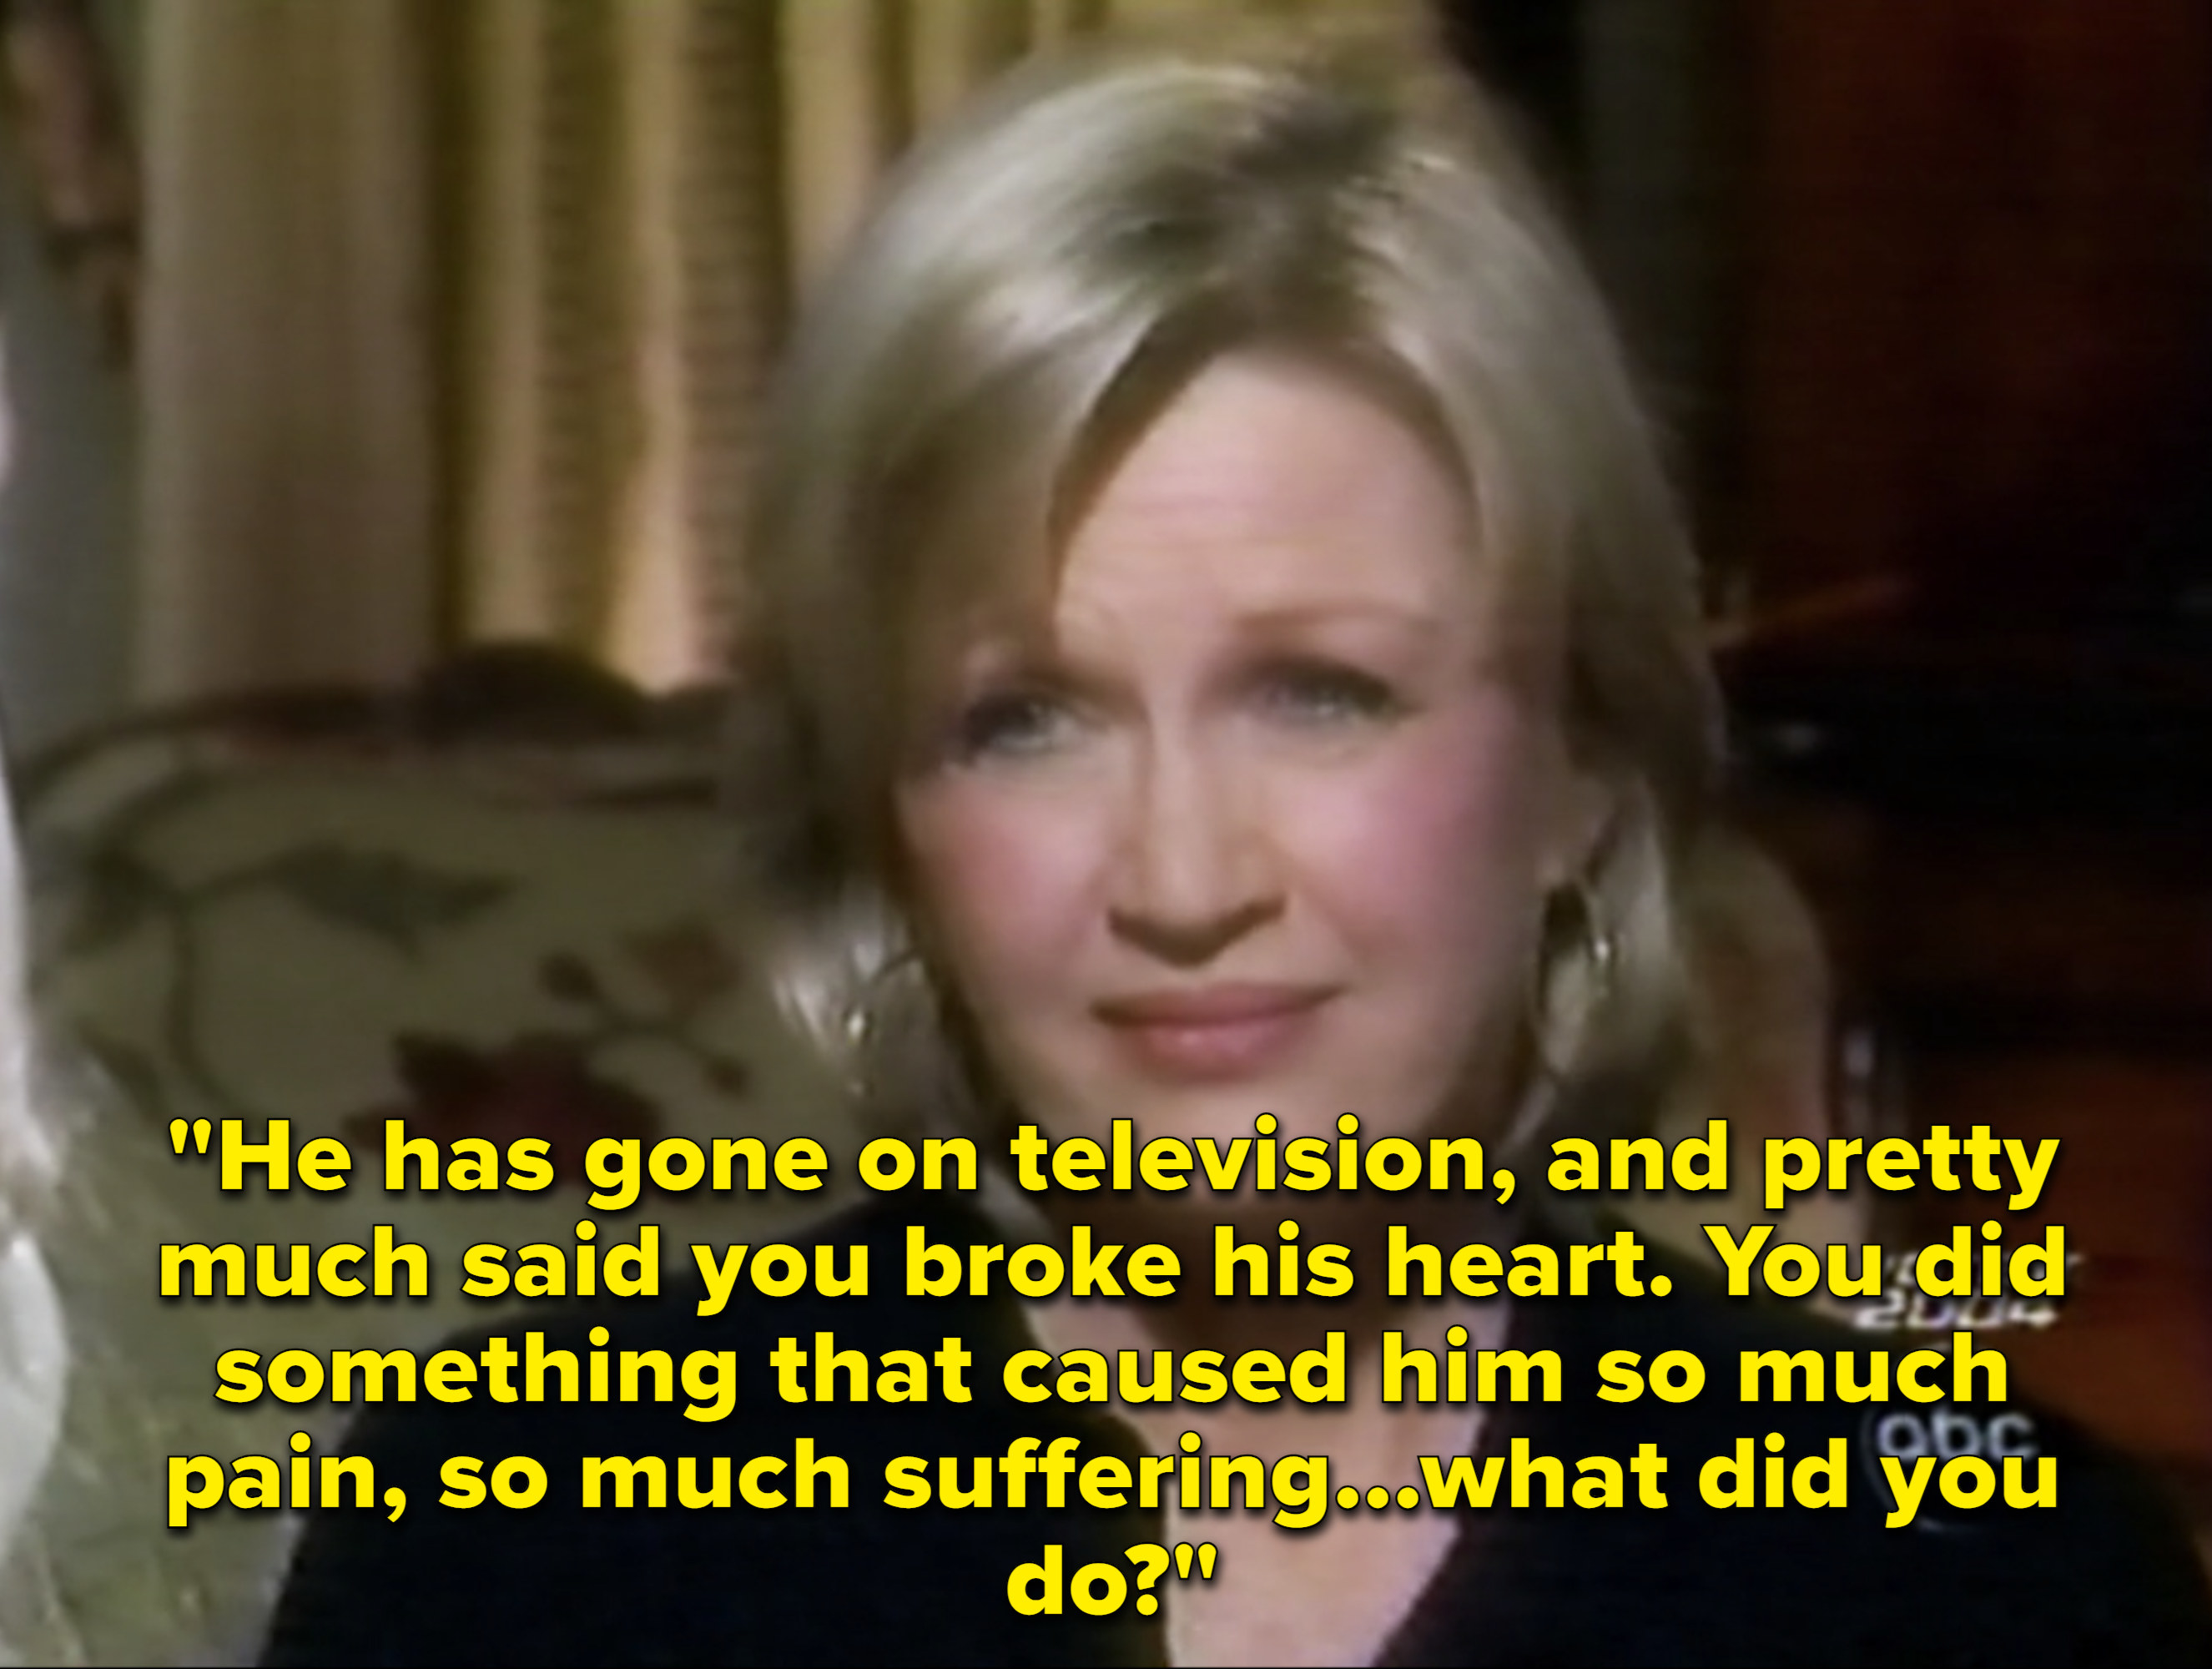 """Diane Sawyer explaining that Justin is claiming Britney did something unforgivable, and asking, """"what did you do."""""""